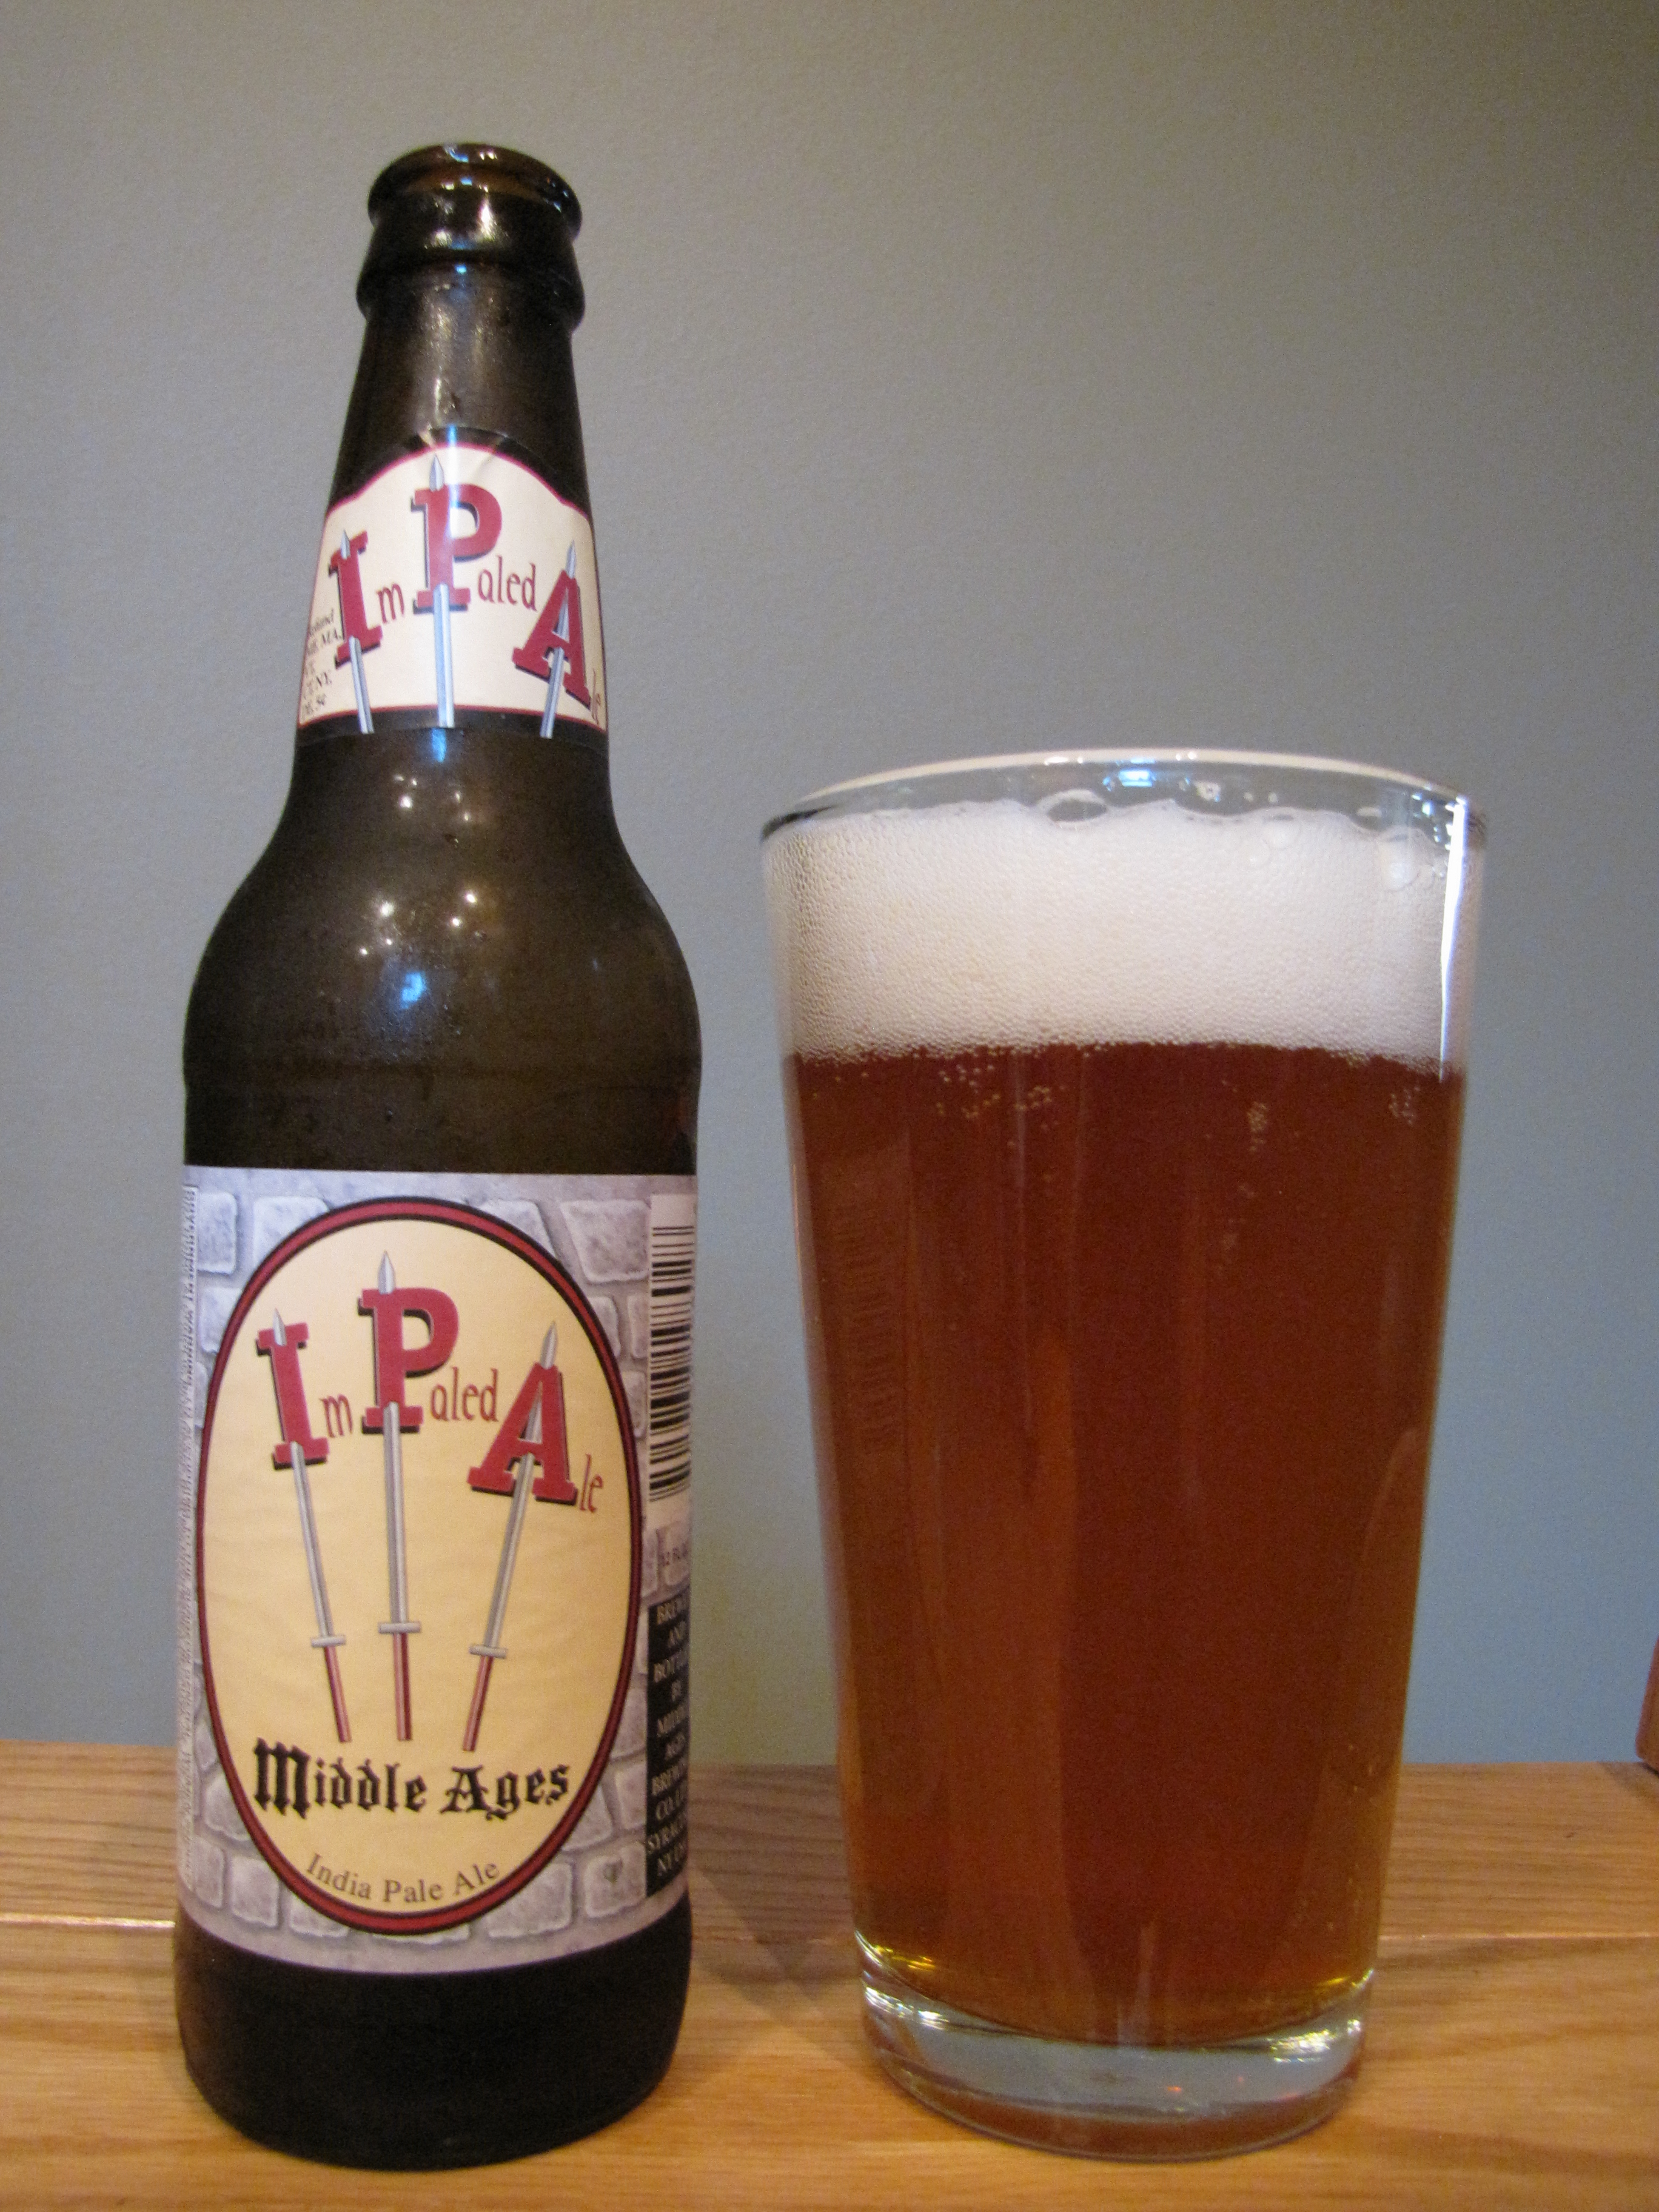 Middle Ages Impaled Ale